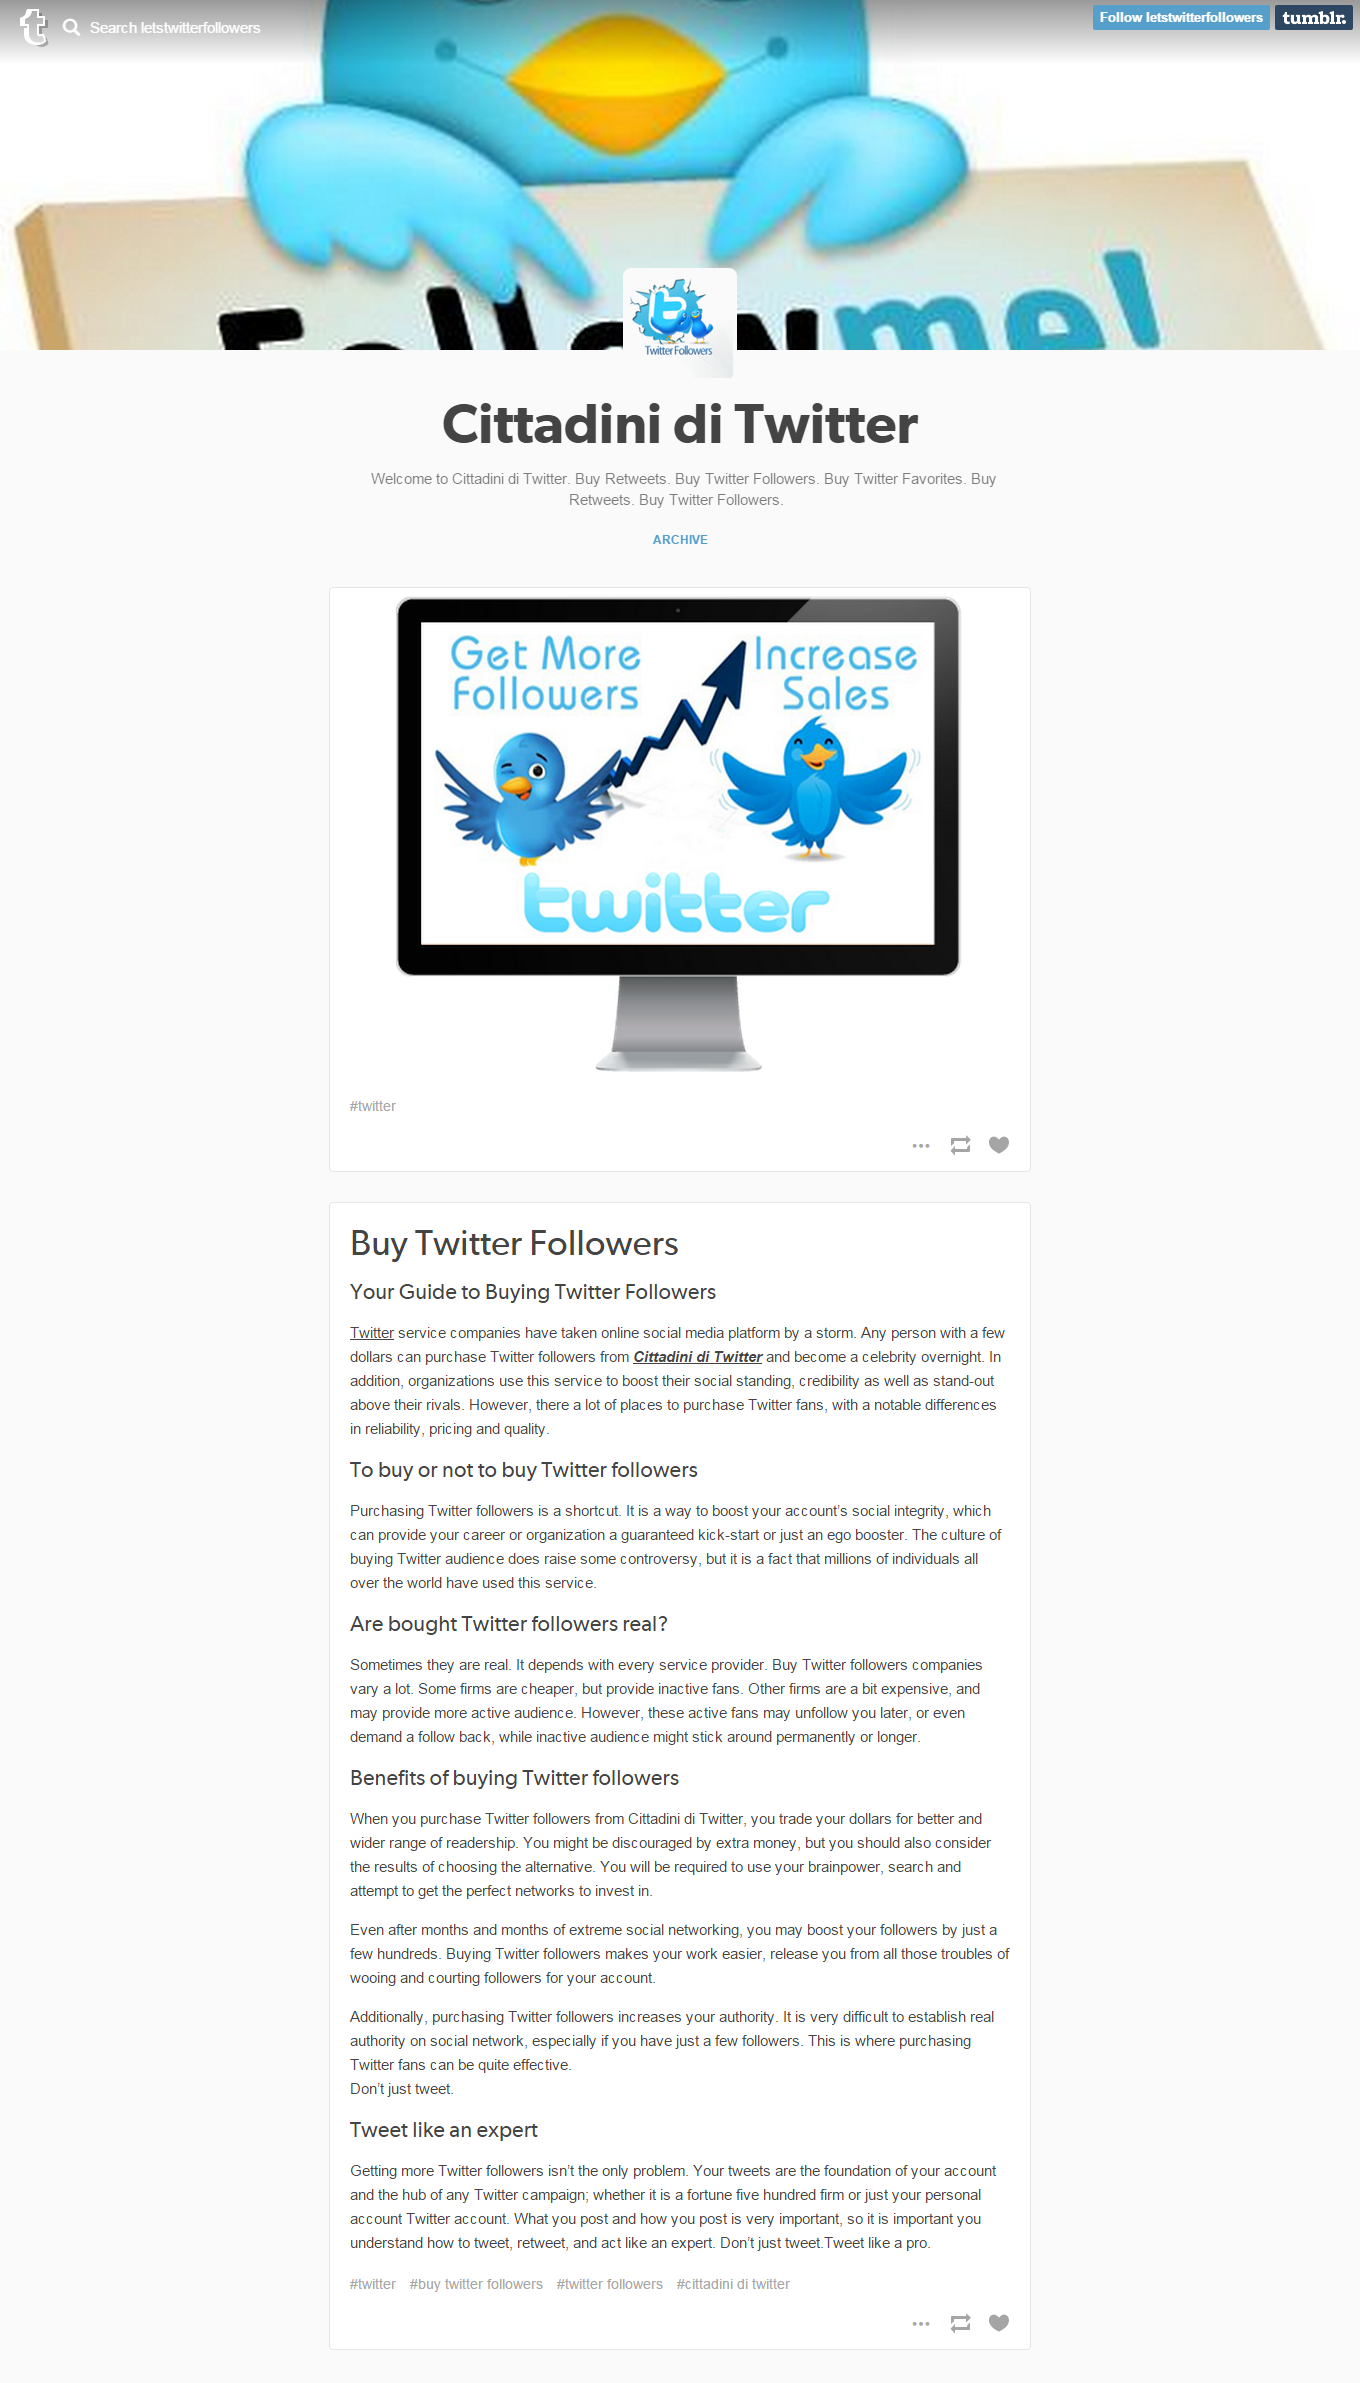 BuzzerTwit.com - All in one reposotory for Twitter Applications